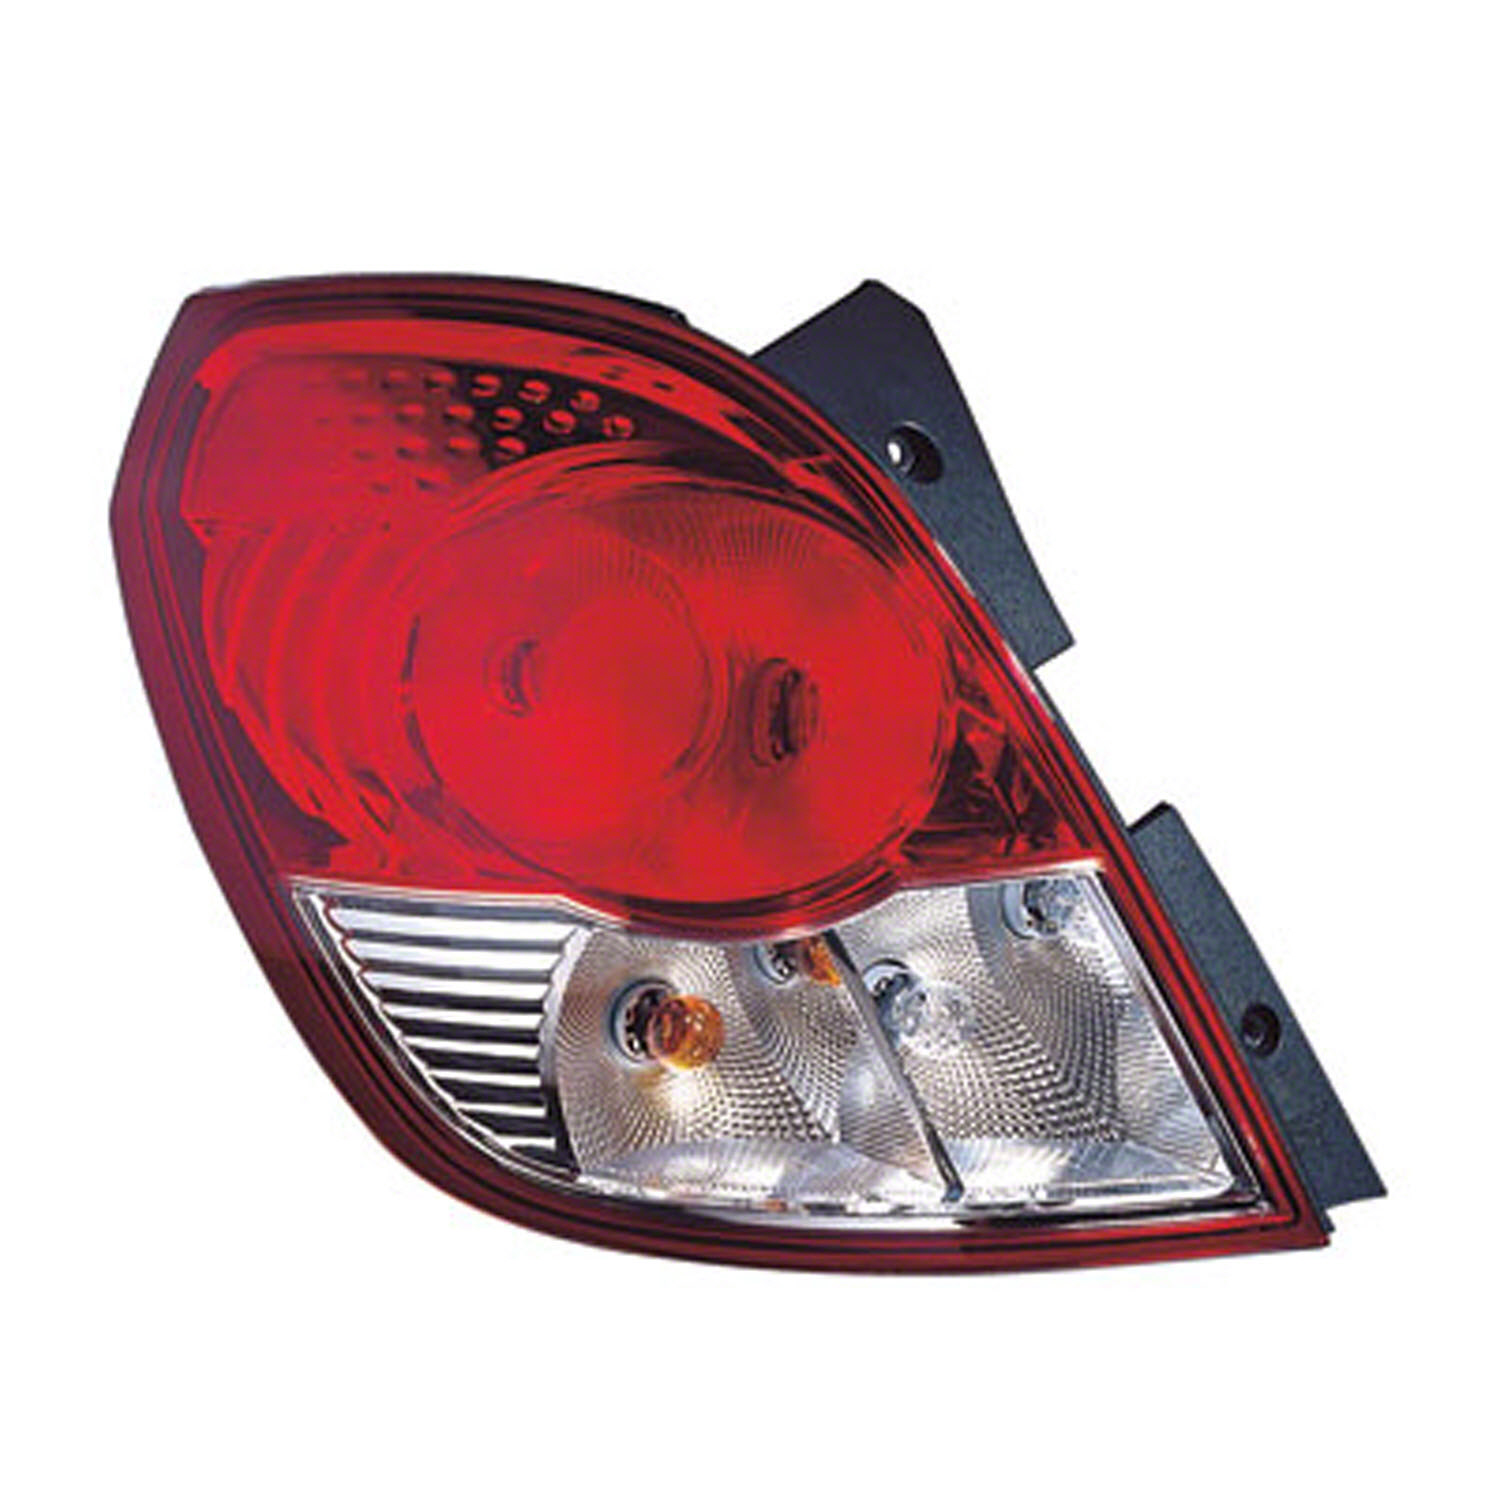 hight resolution of 2008 2009 saturn vue driver side left tail lamp assembly 96830929 includes wiring harness walmart com